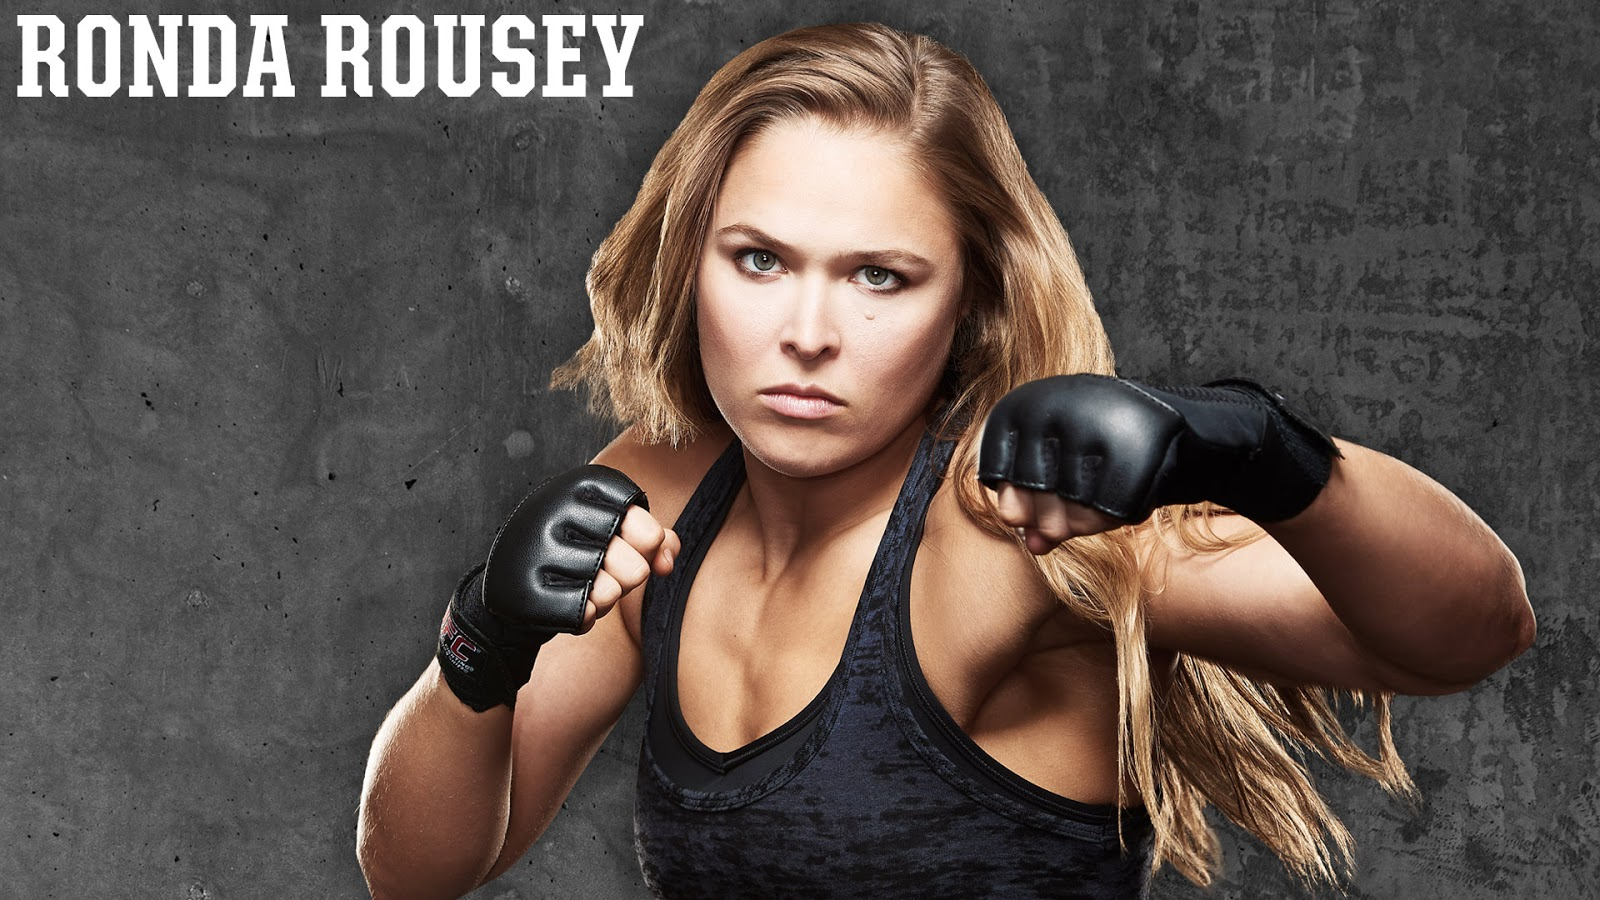 Hot celebrities ronda rousey latest wallpapers